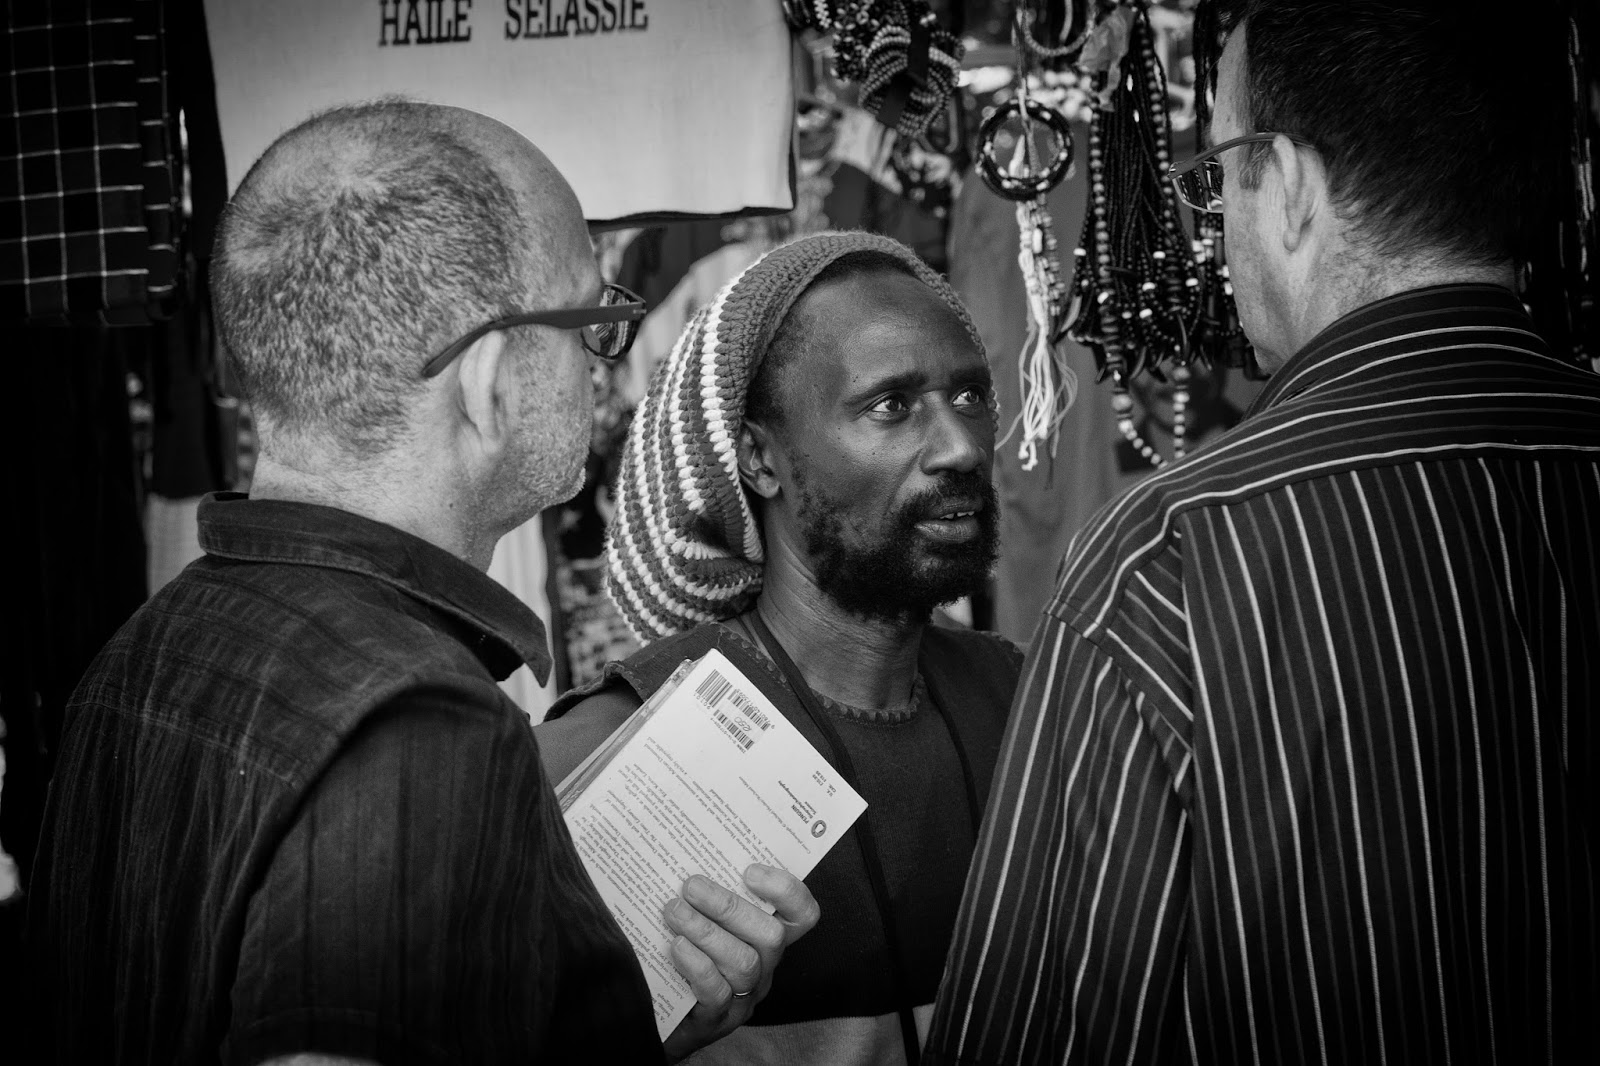 A rasta talks to two men in spectacles